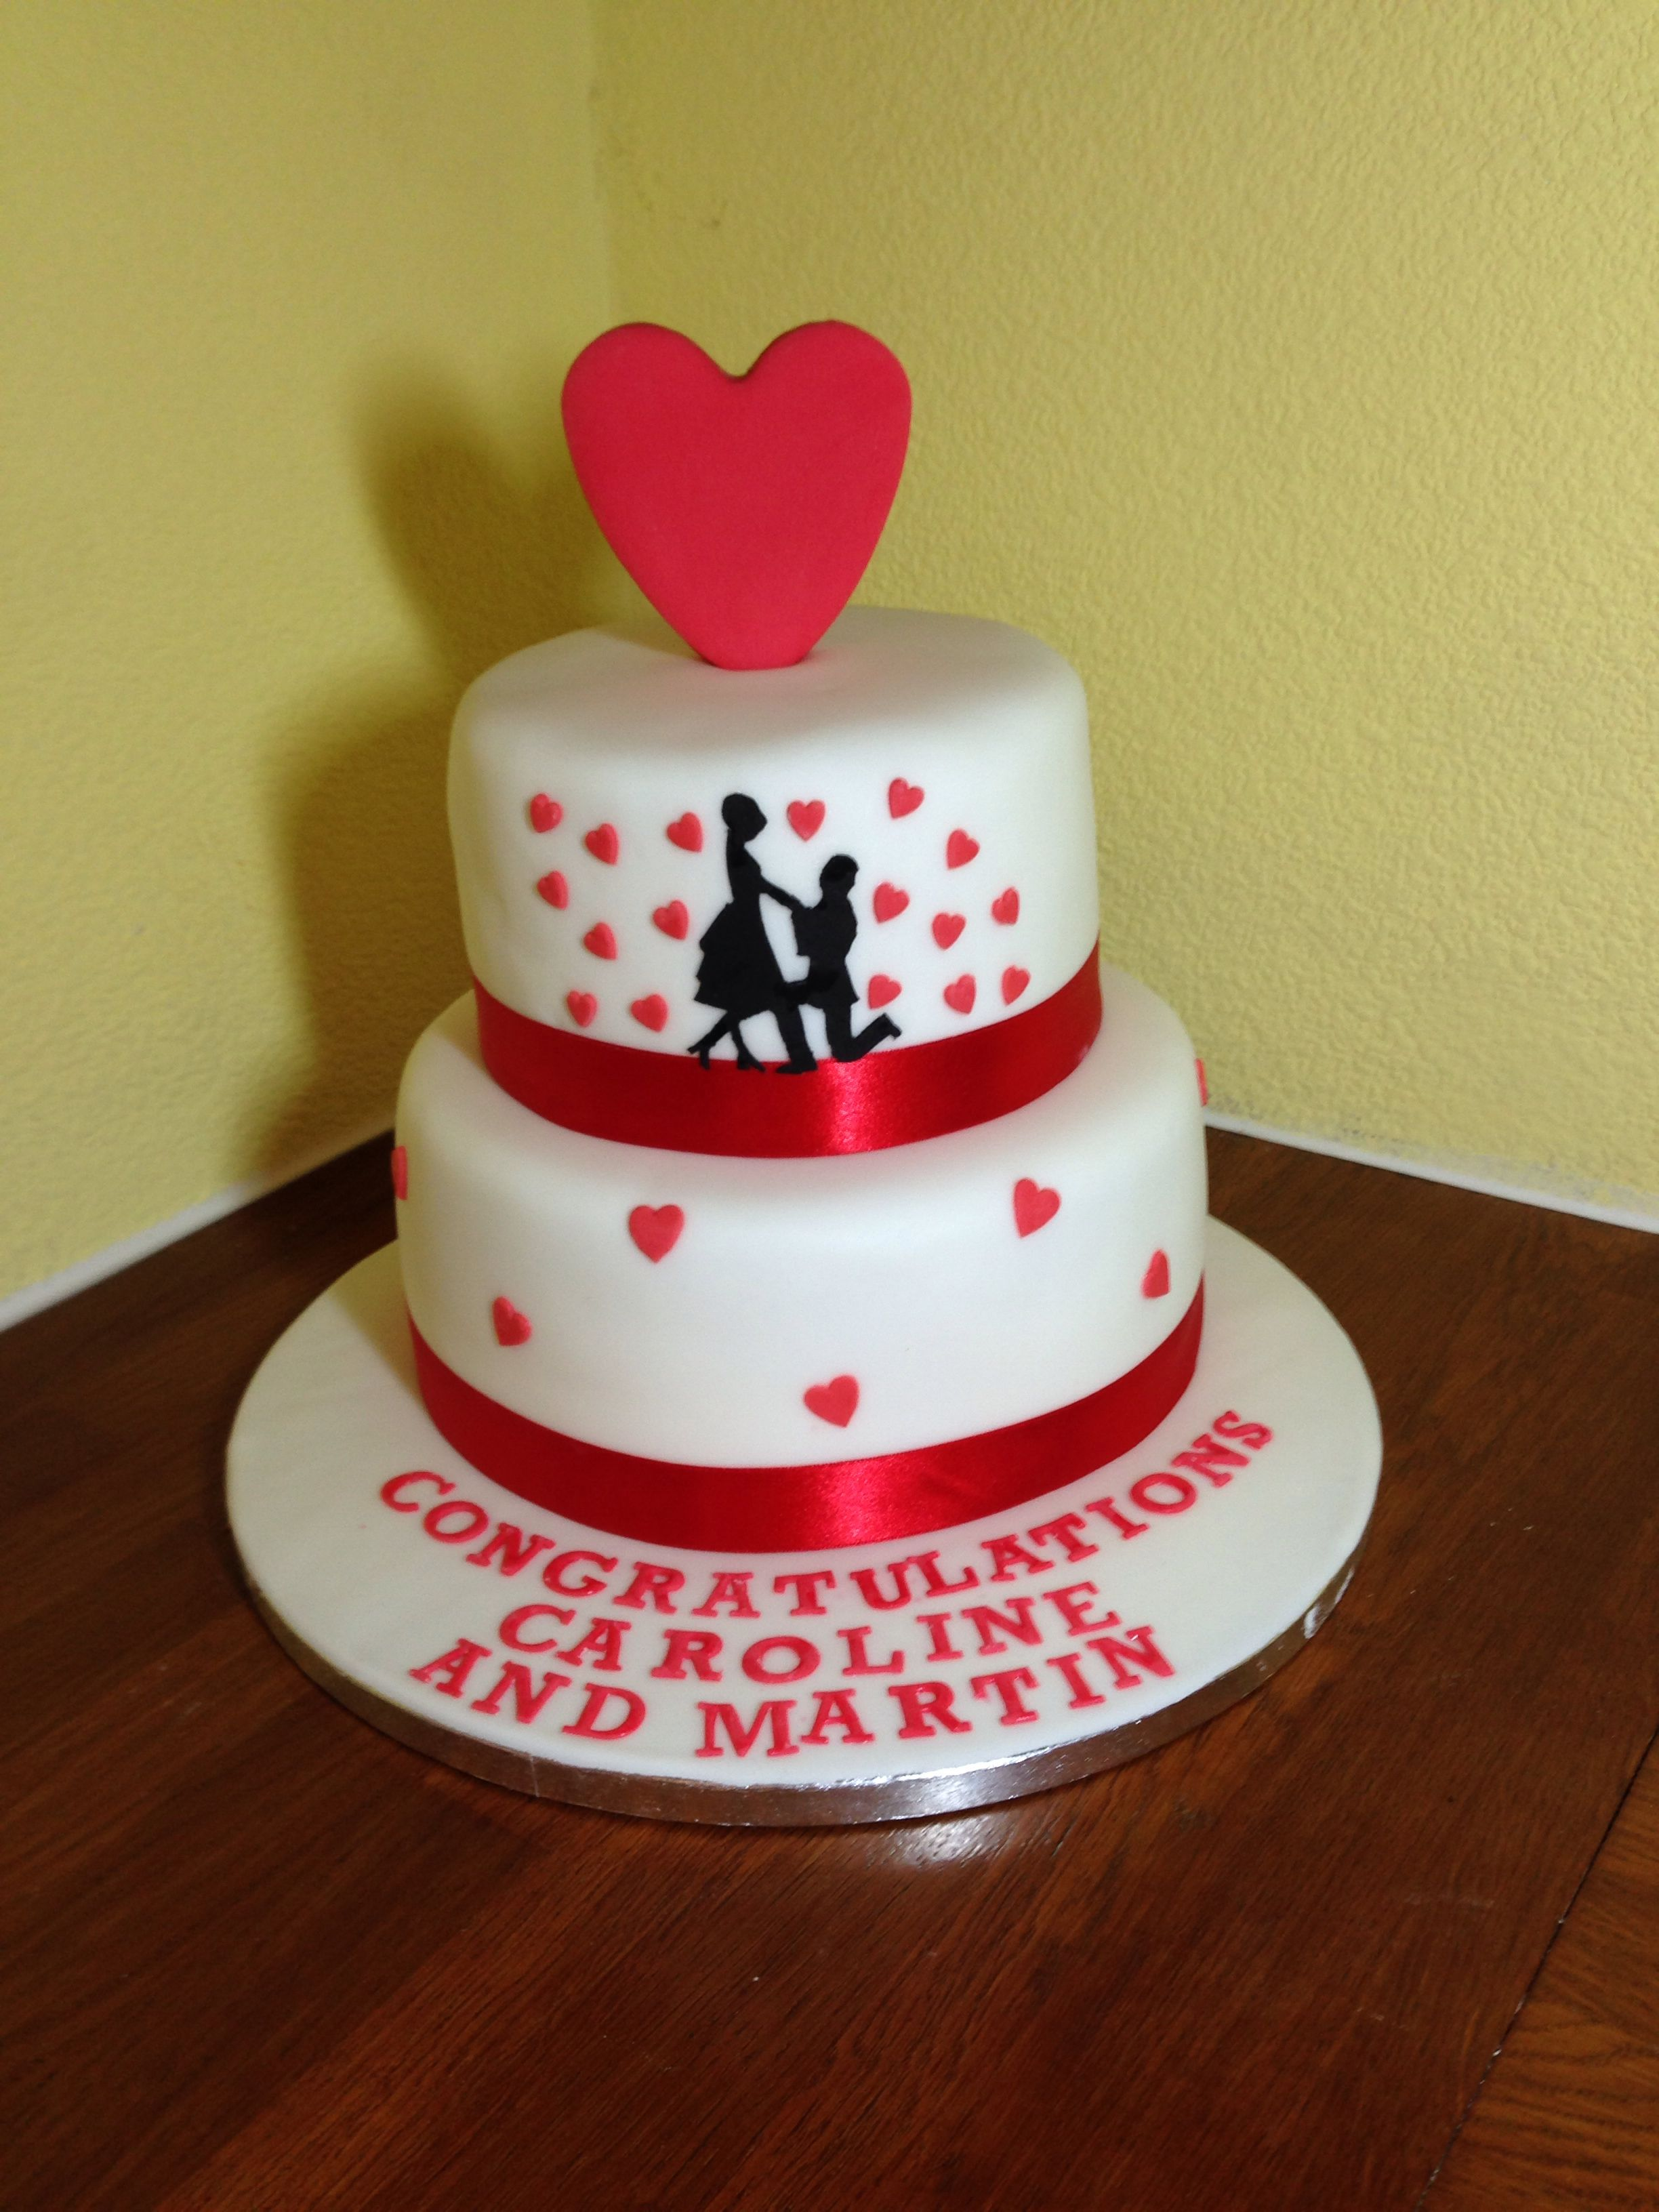 Engagement cake by Angell cakes